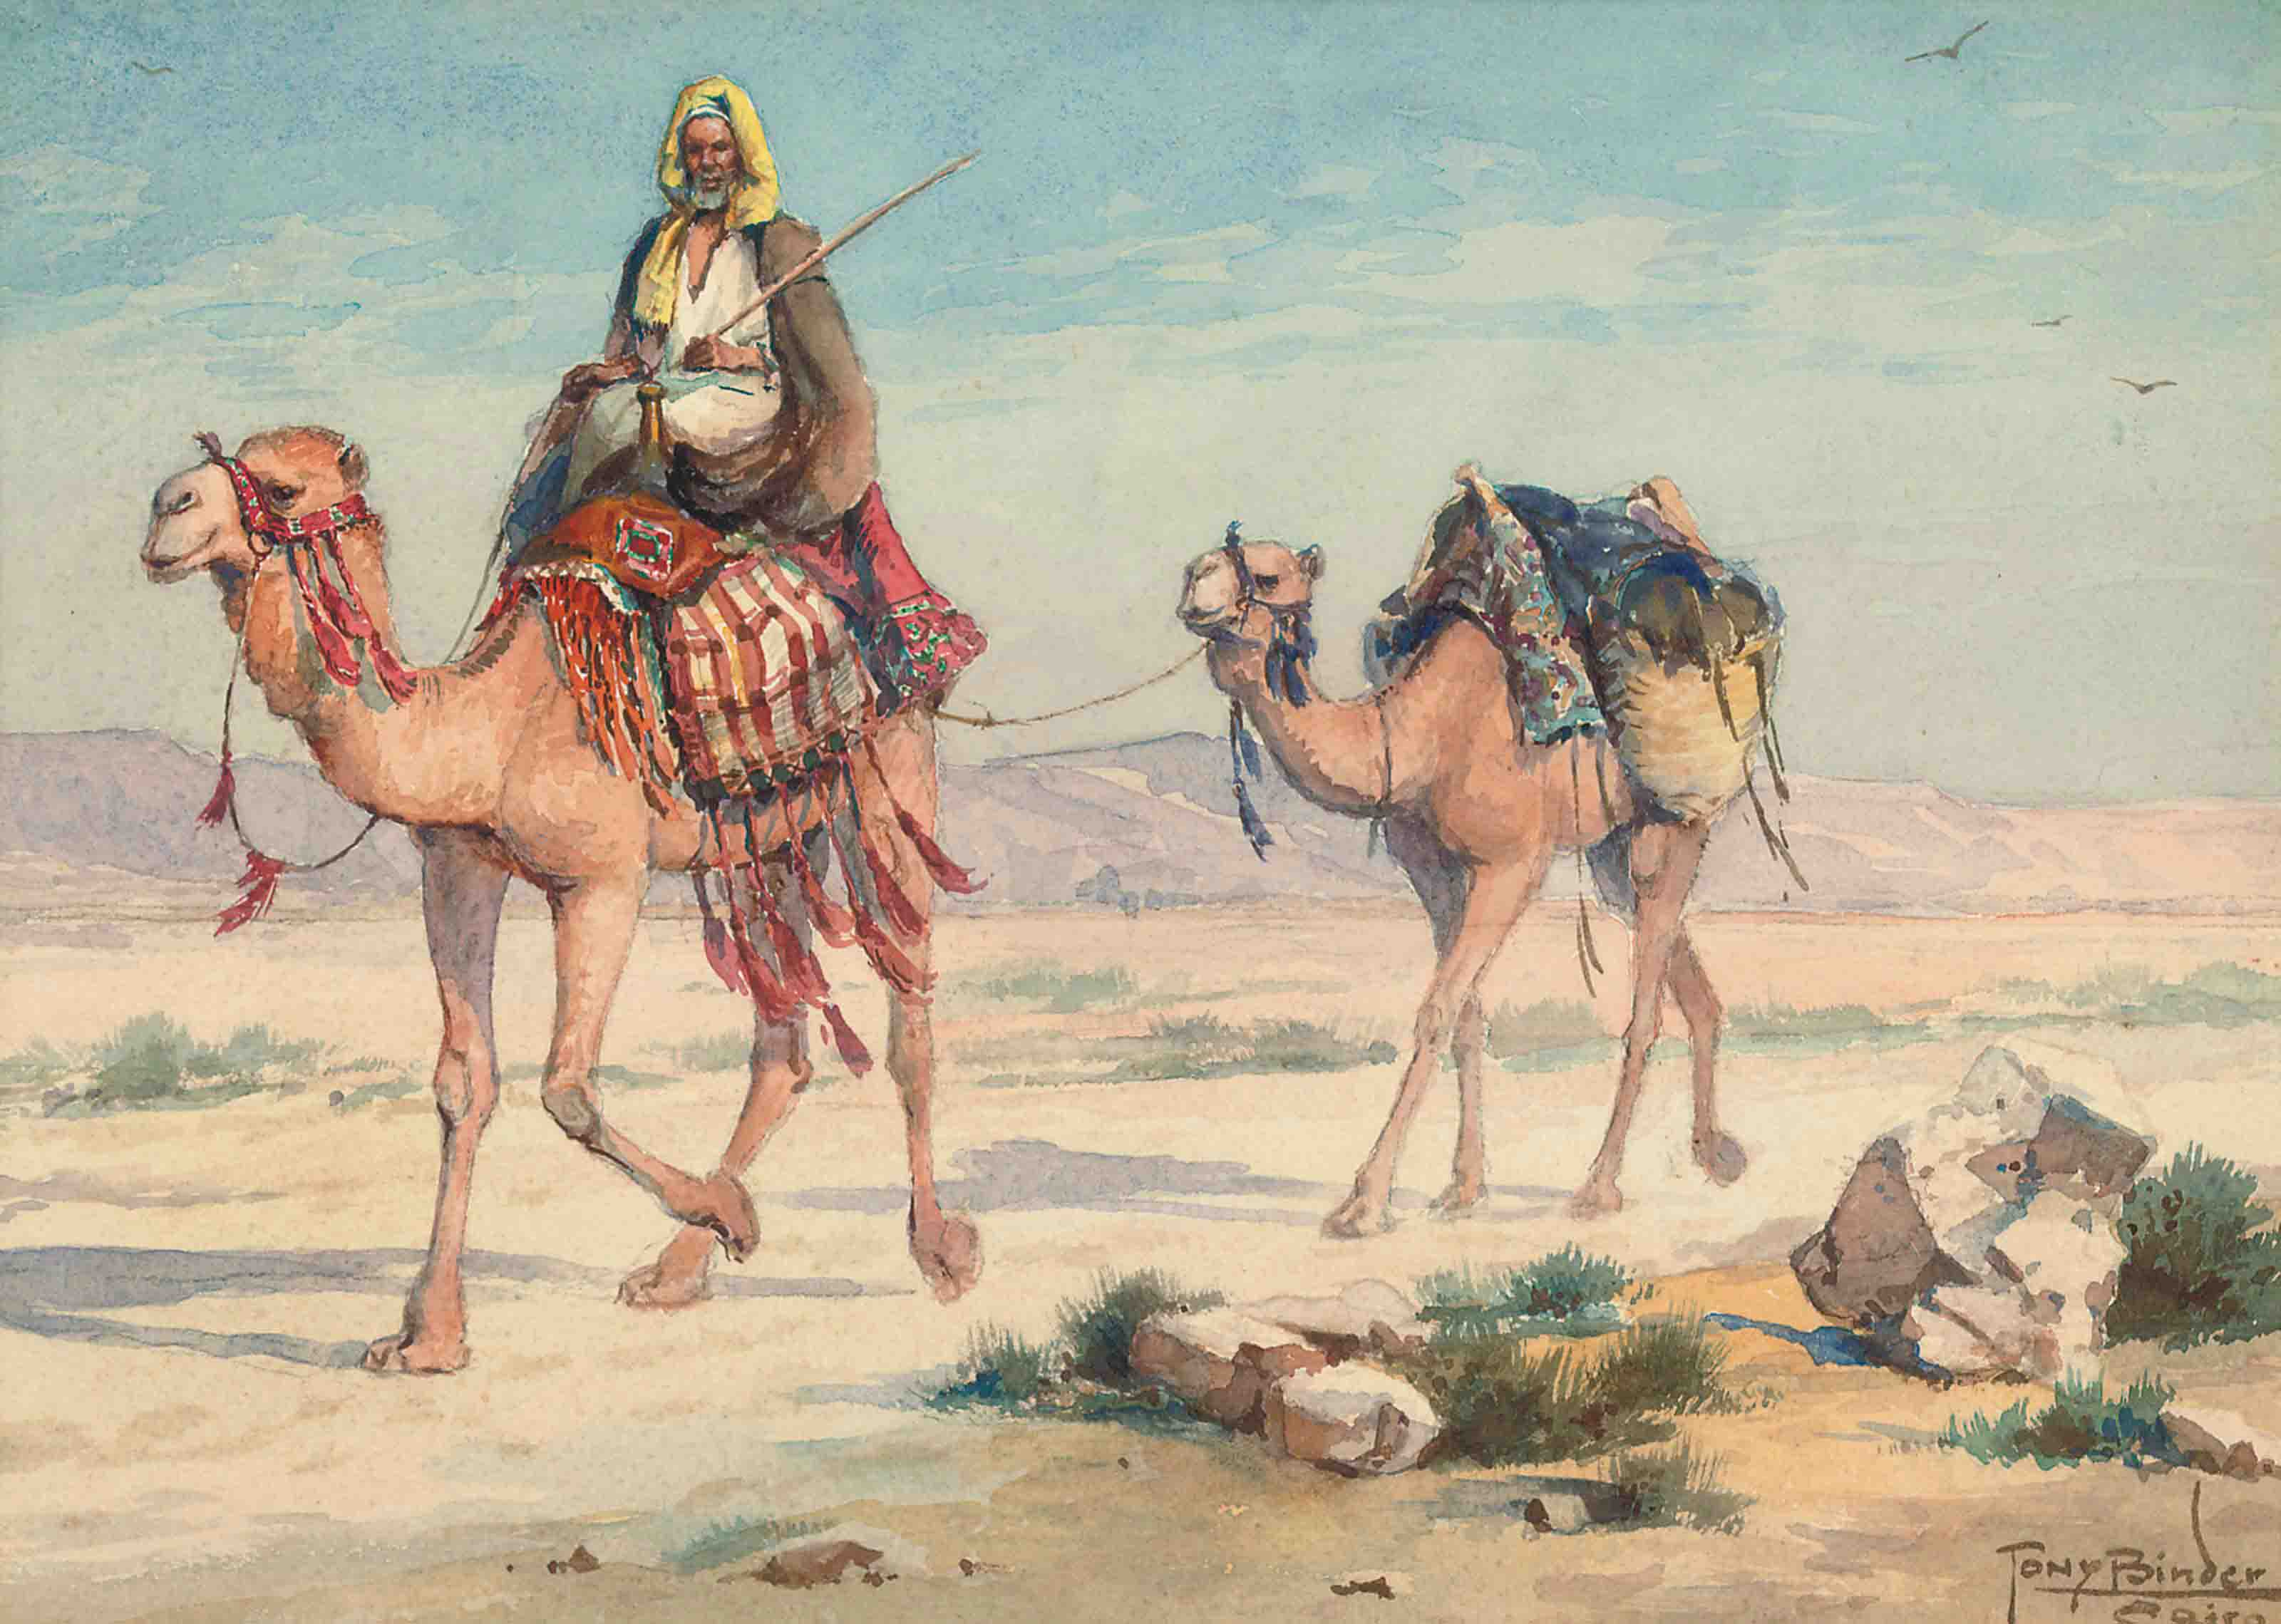 An Arab traveller in the desert